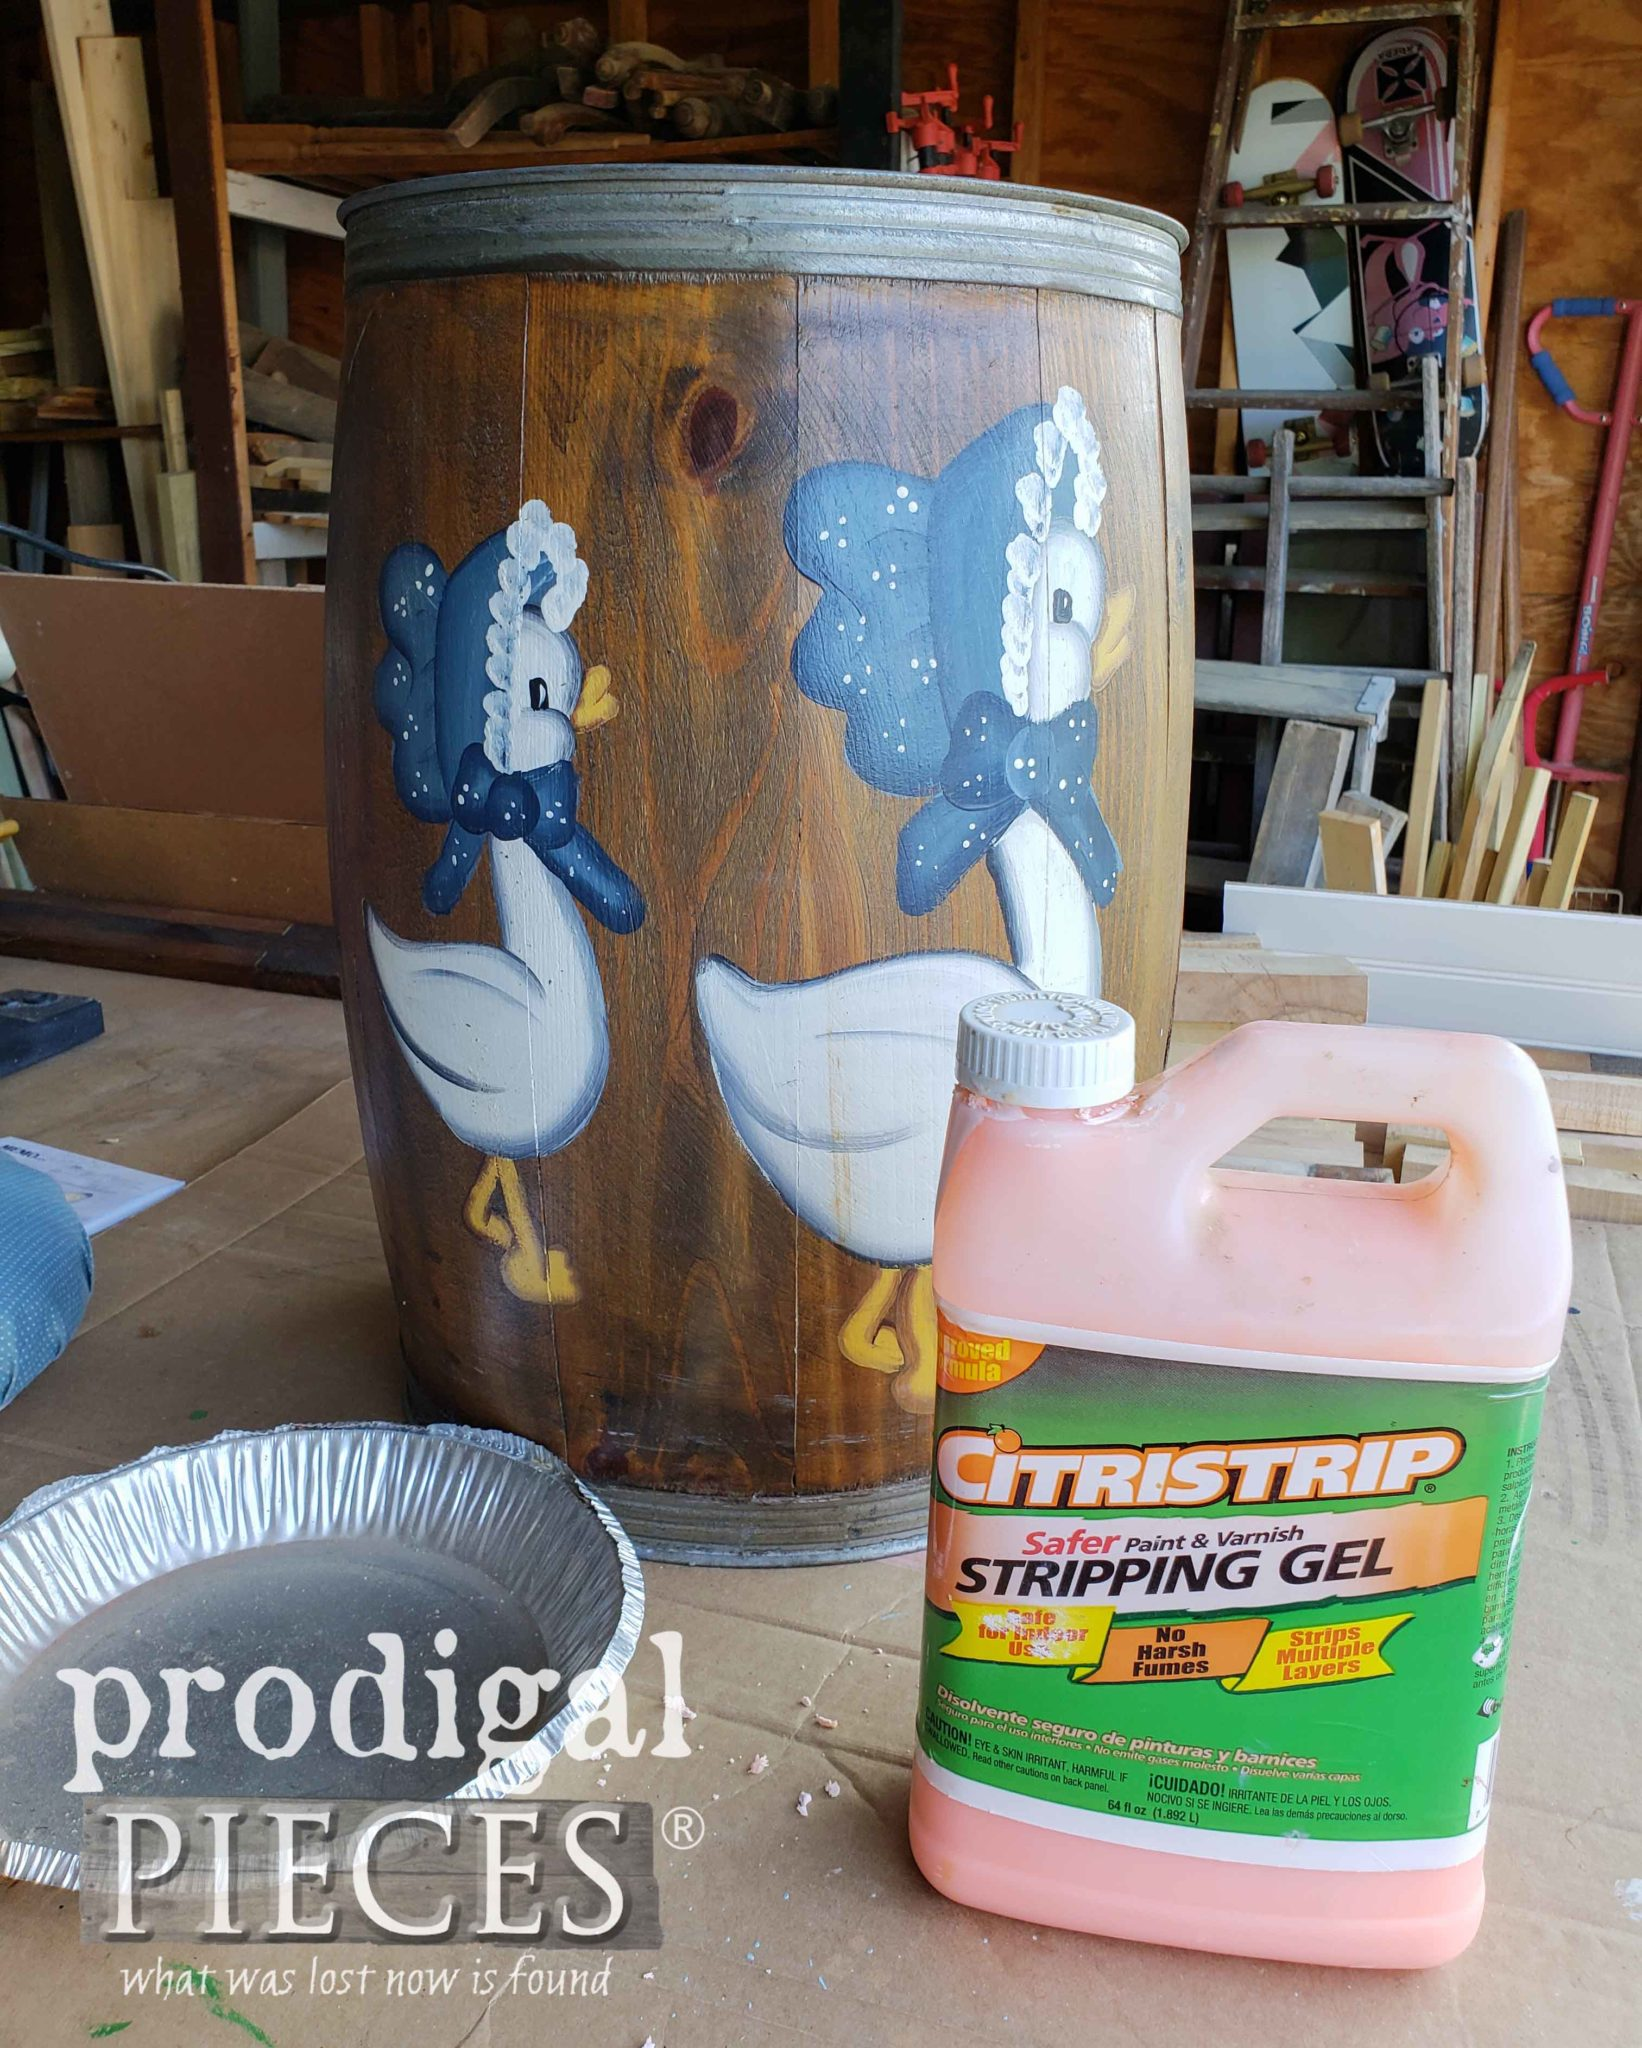 Using CitriStrip to Remove Old Finish and Paint | prodigalpieces.com